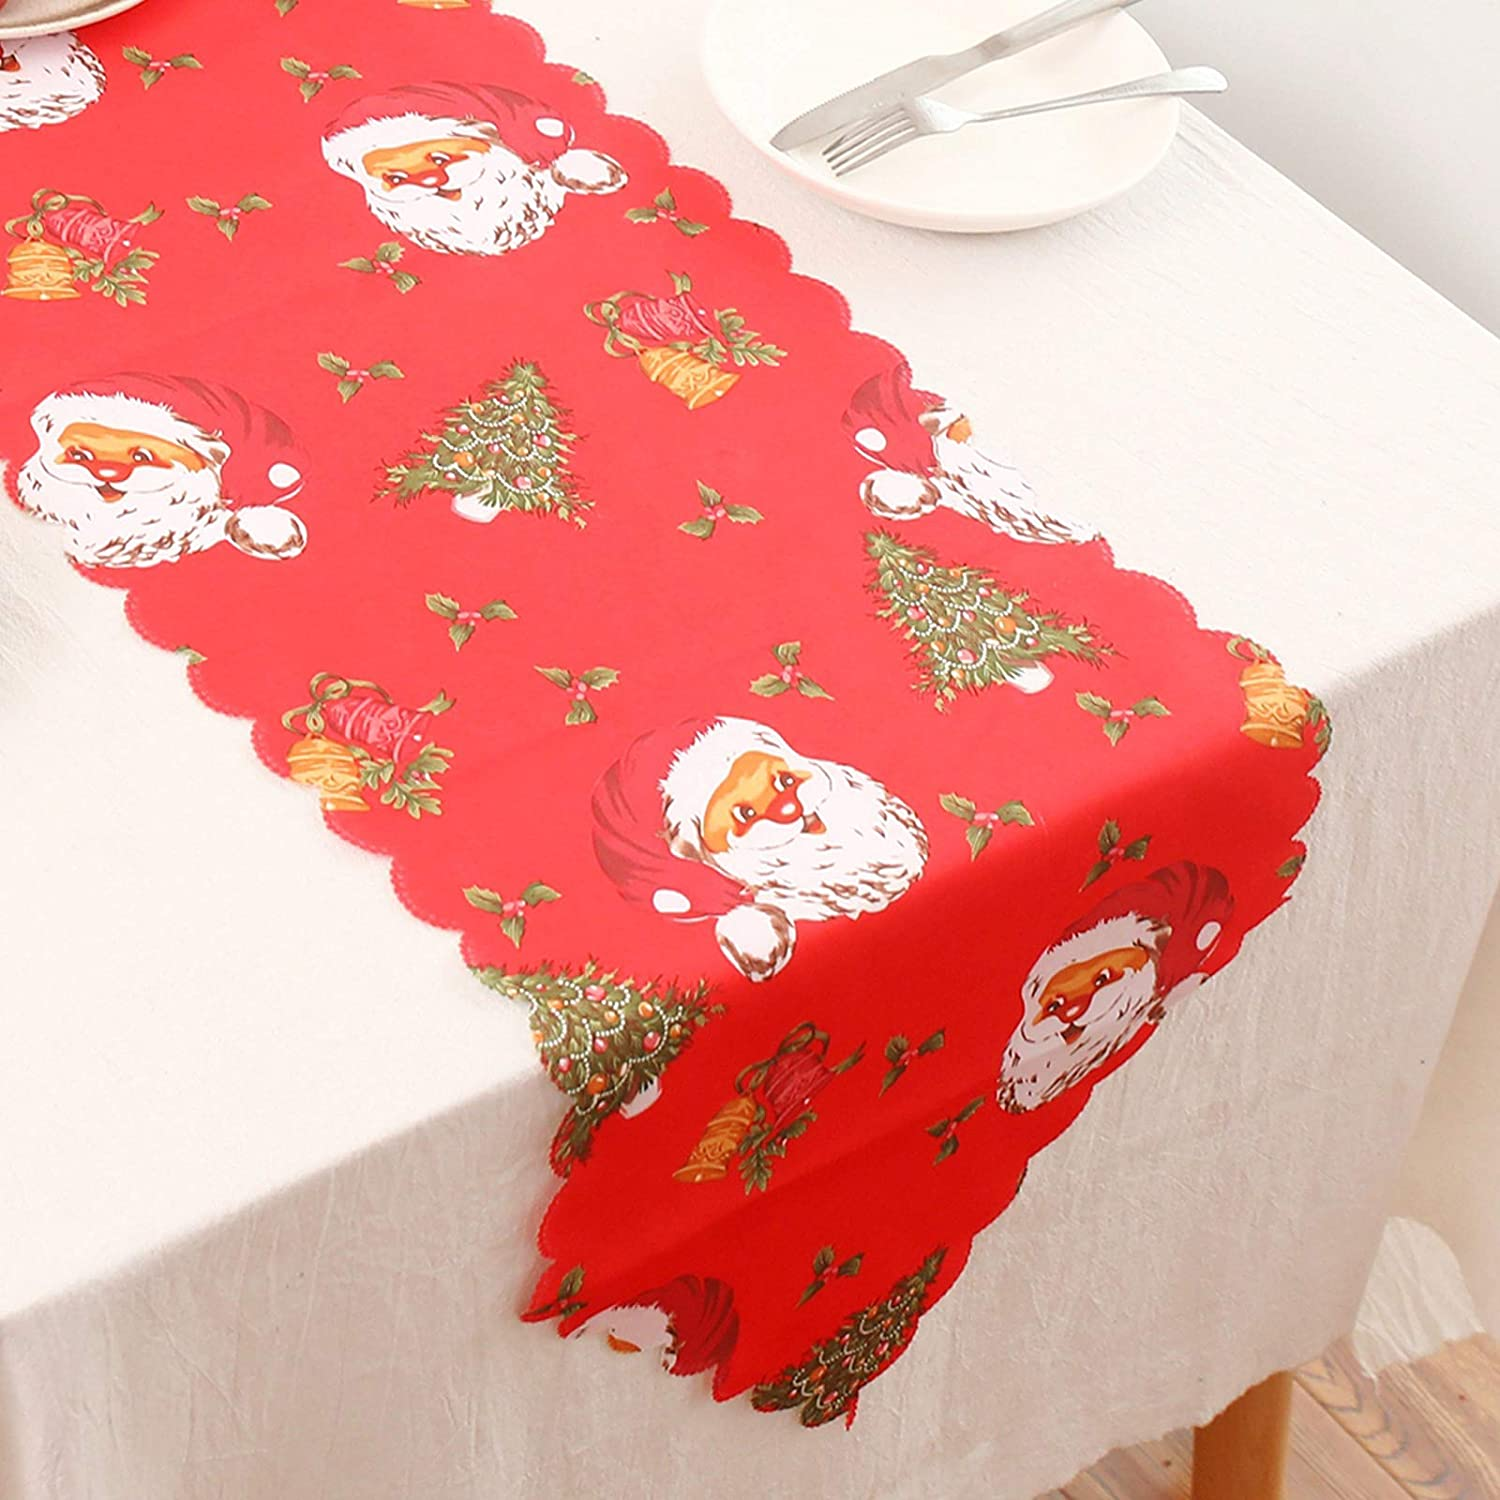 Reusable Decorative Printed Tassels YancLife Christmas Table Runner Washable Personalized Family Table Decoration for Party Restaurant Table Mats Wedding